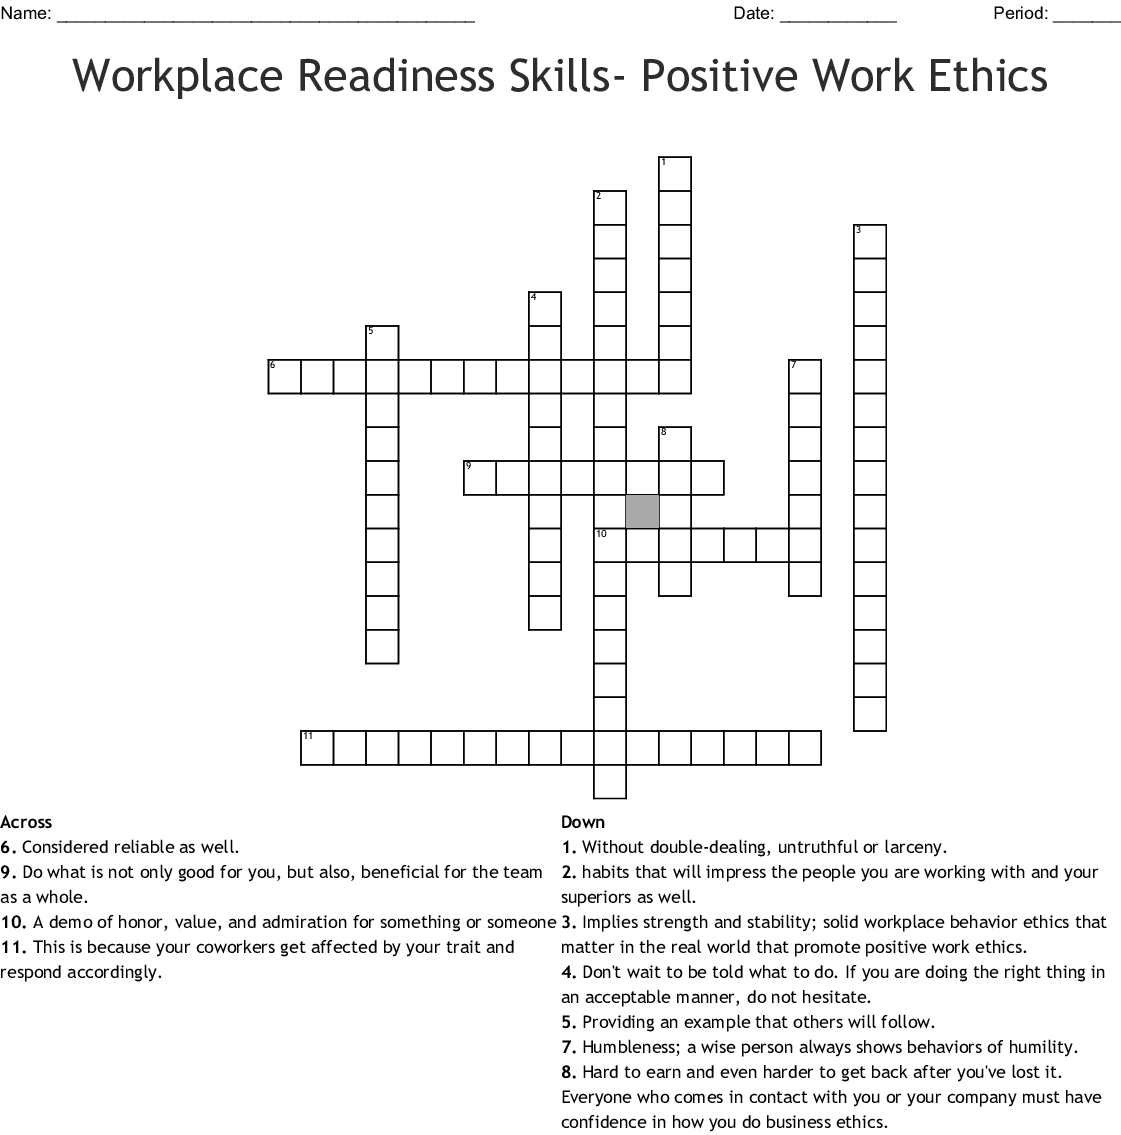 Workplace Readiness Skills Positive Work Ethics Crossword